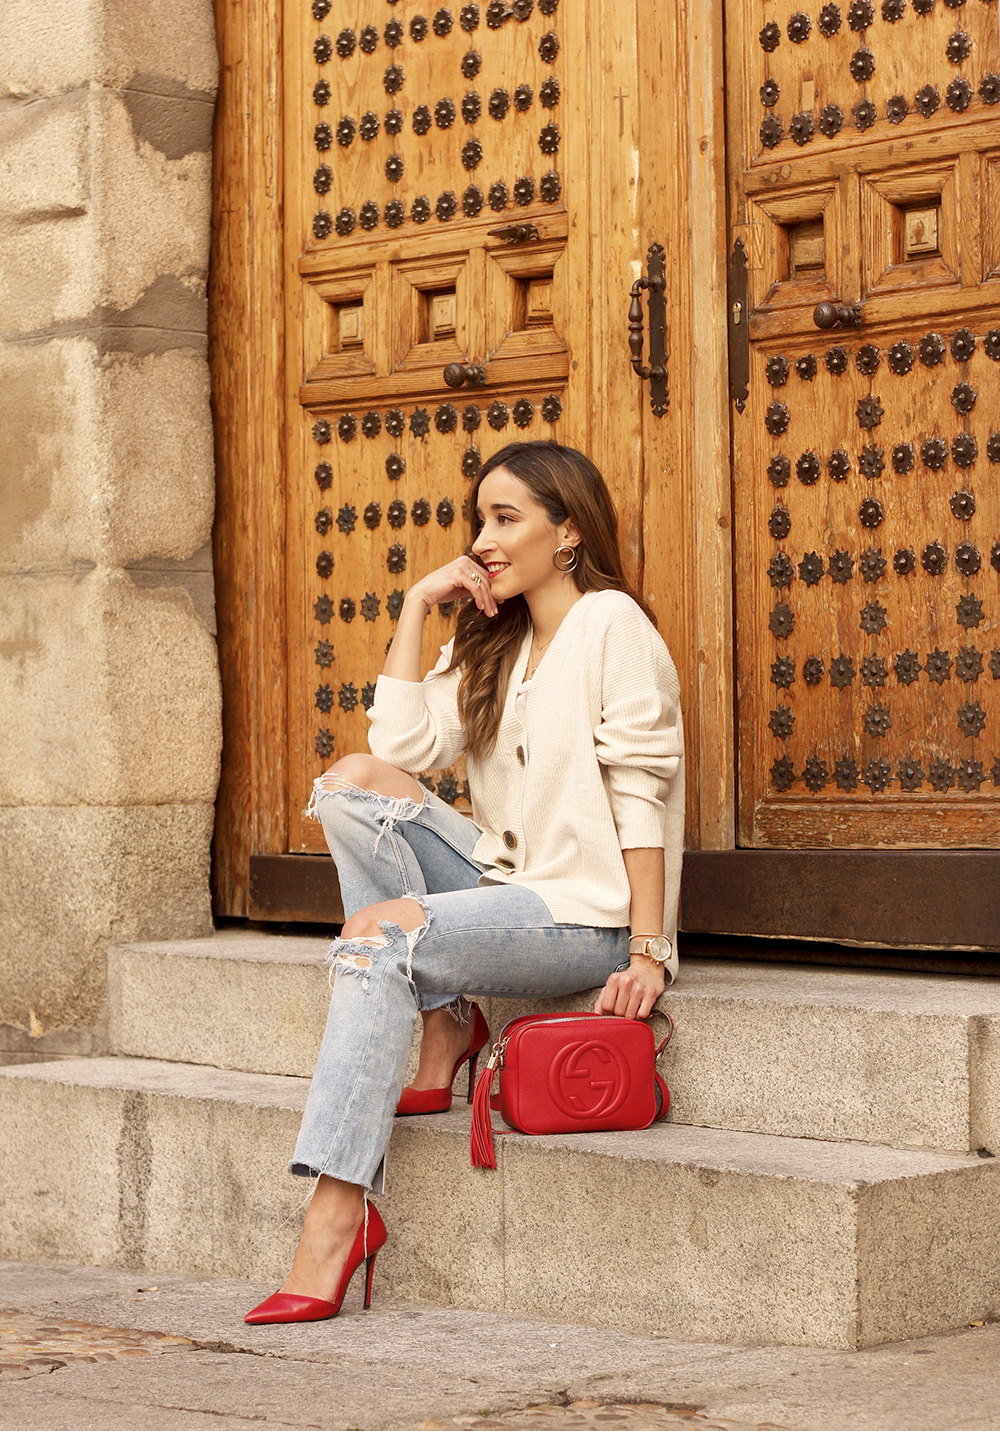 beige cardigan gucci bag red heels ripped jeans street style outfit 20199